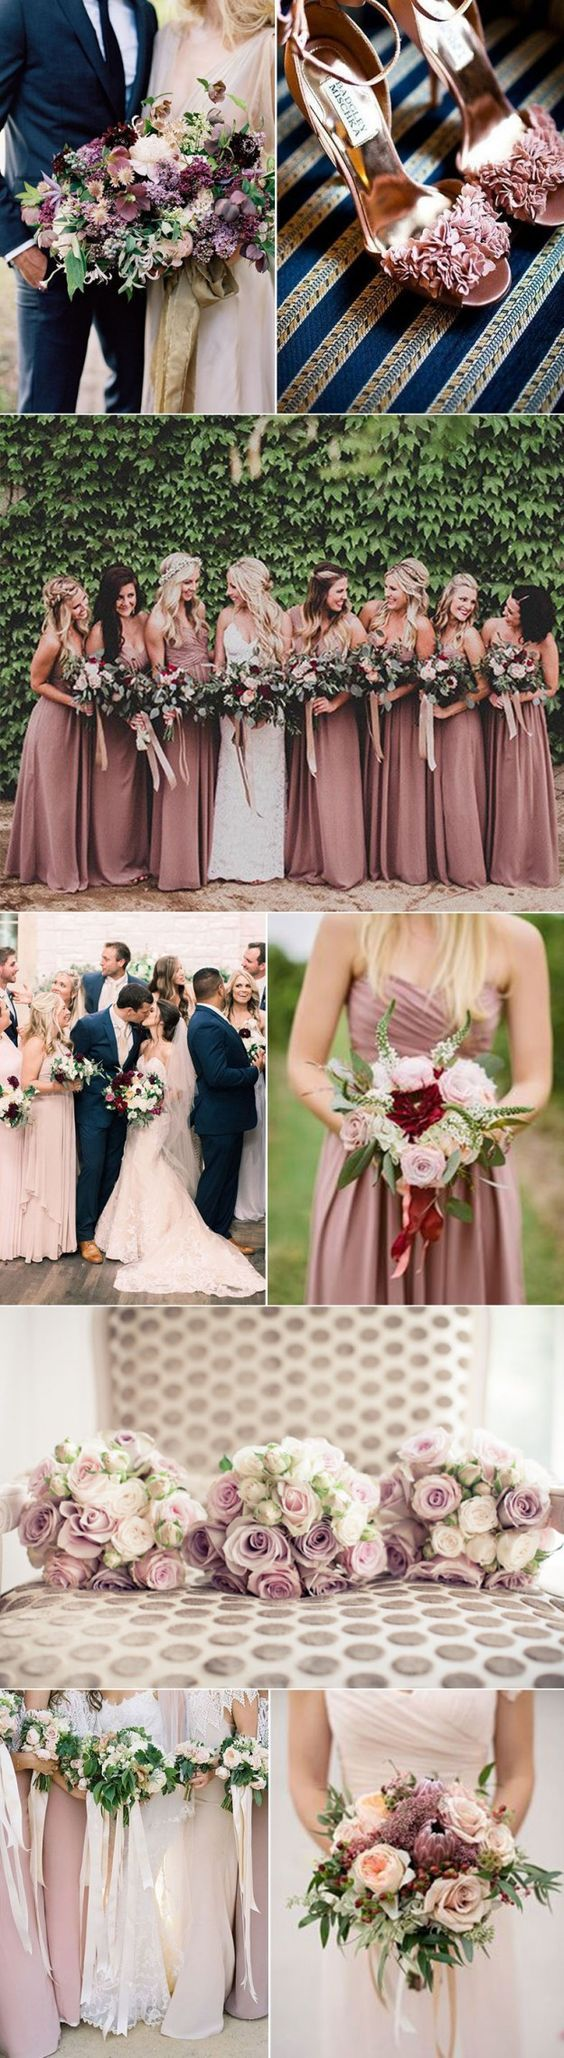 Discussion on this topic: 20 Wedding Flowers Ideas to Copy For , 20-wedding-flowers-ideas-to-copy-for/